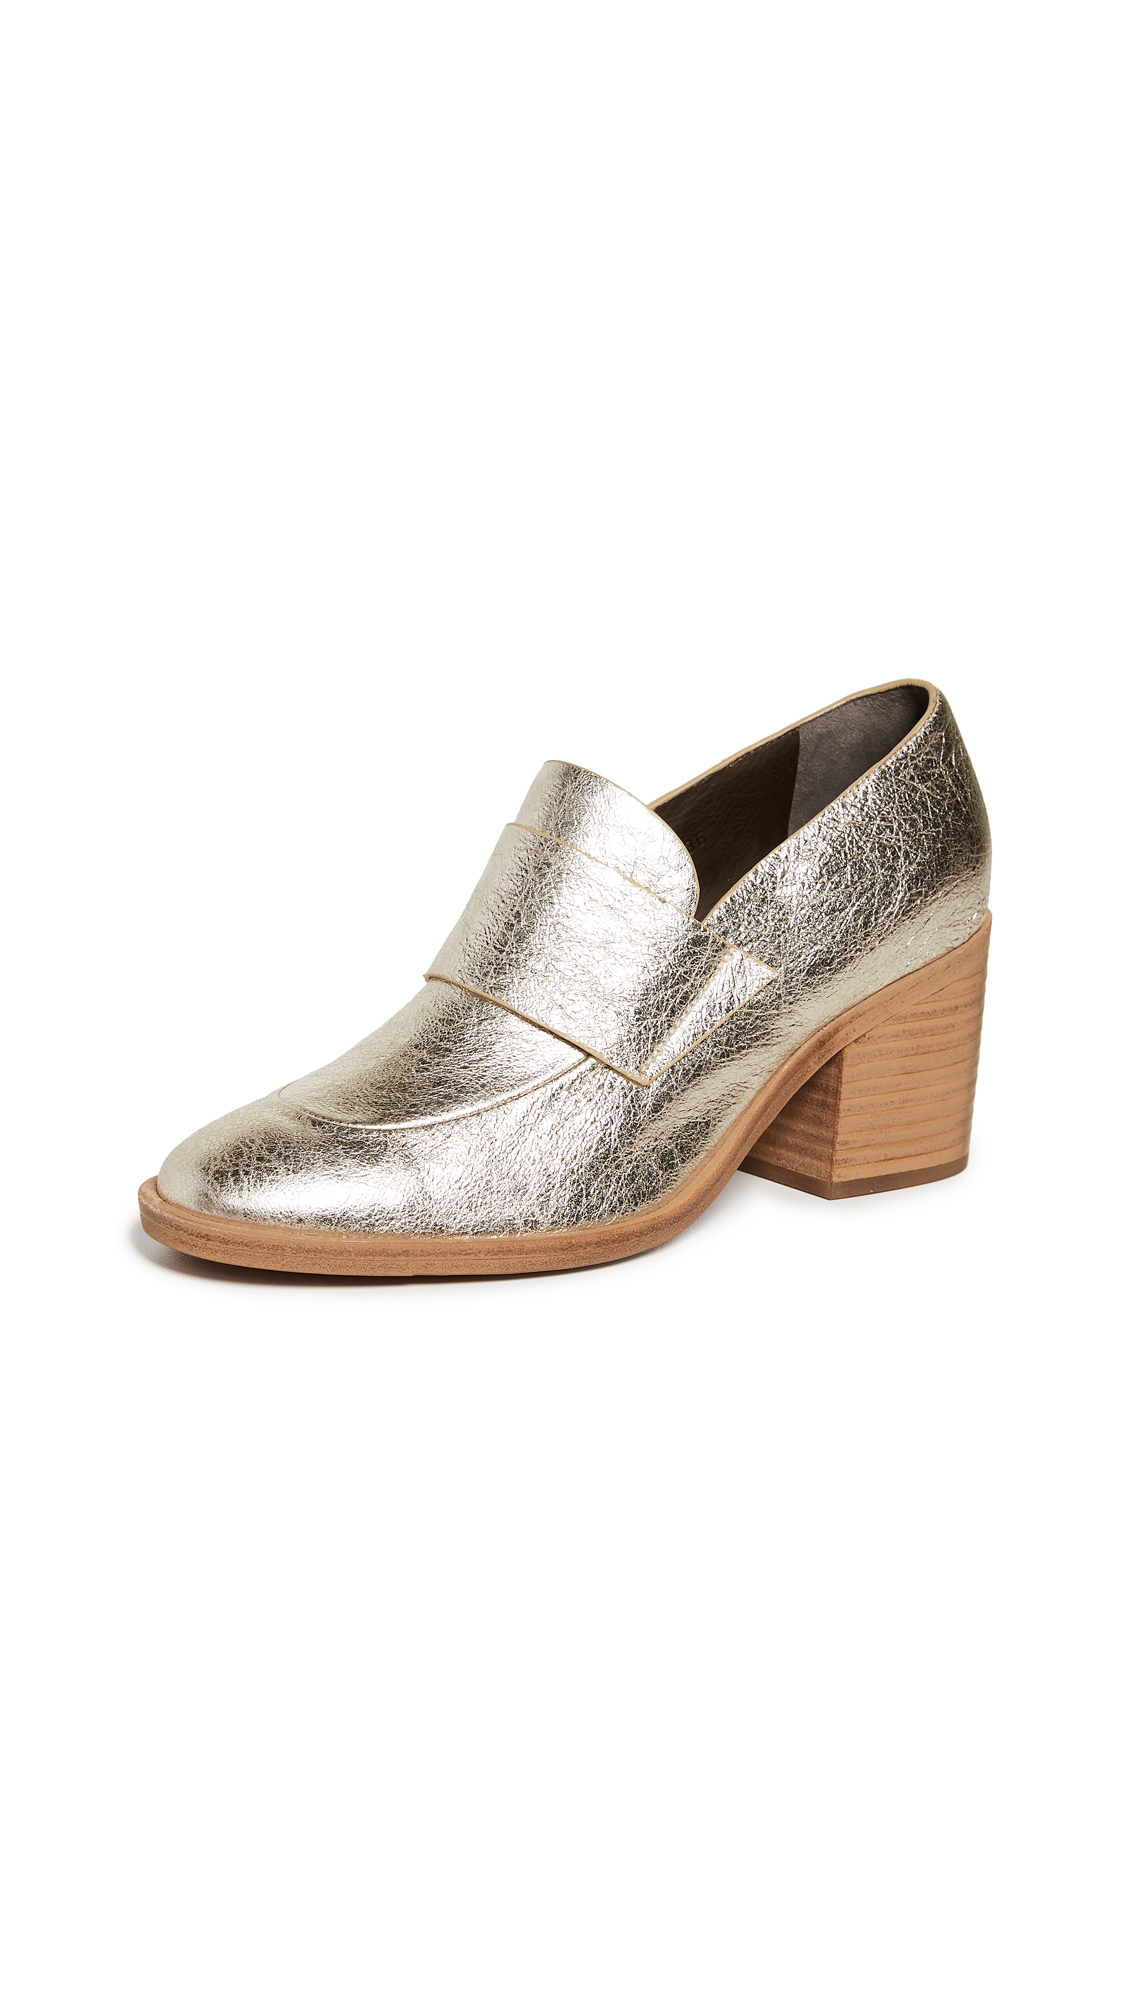 Coclico Shoes Bellatrix Block Heel Loafers - Carrara Gold